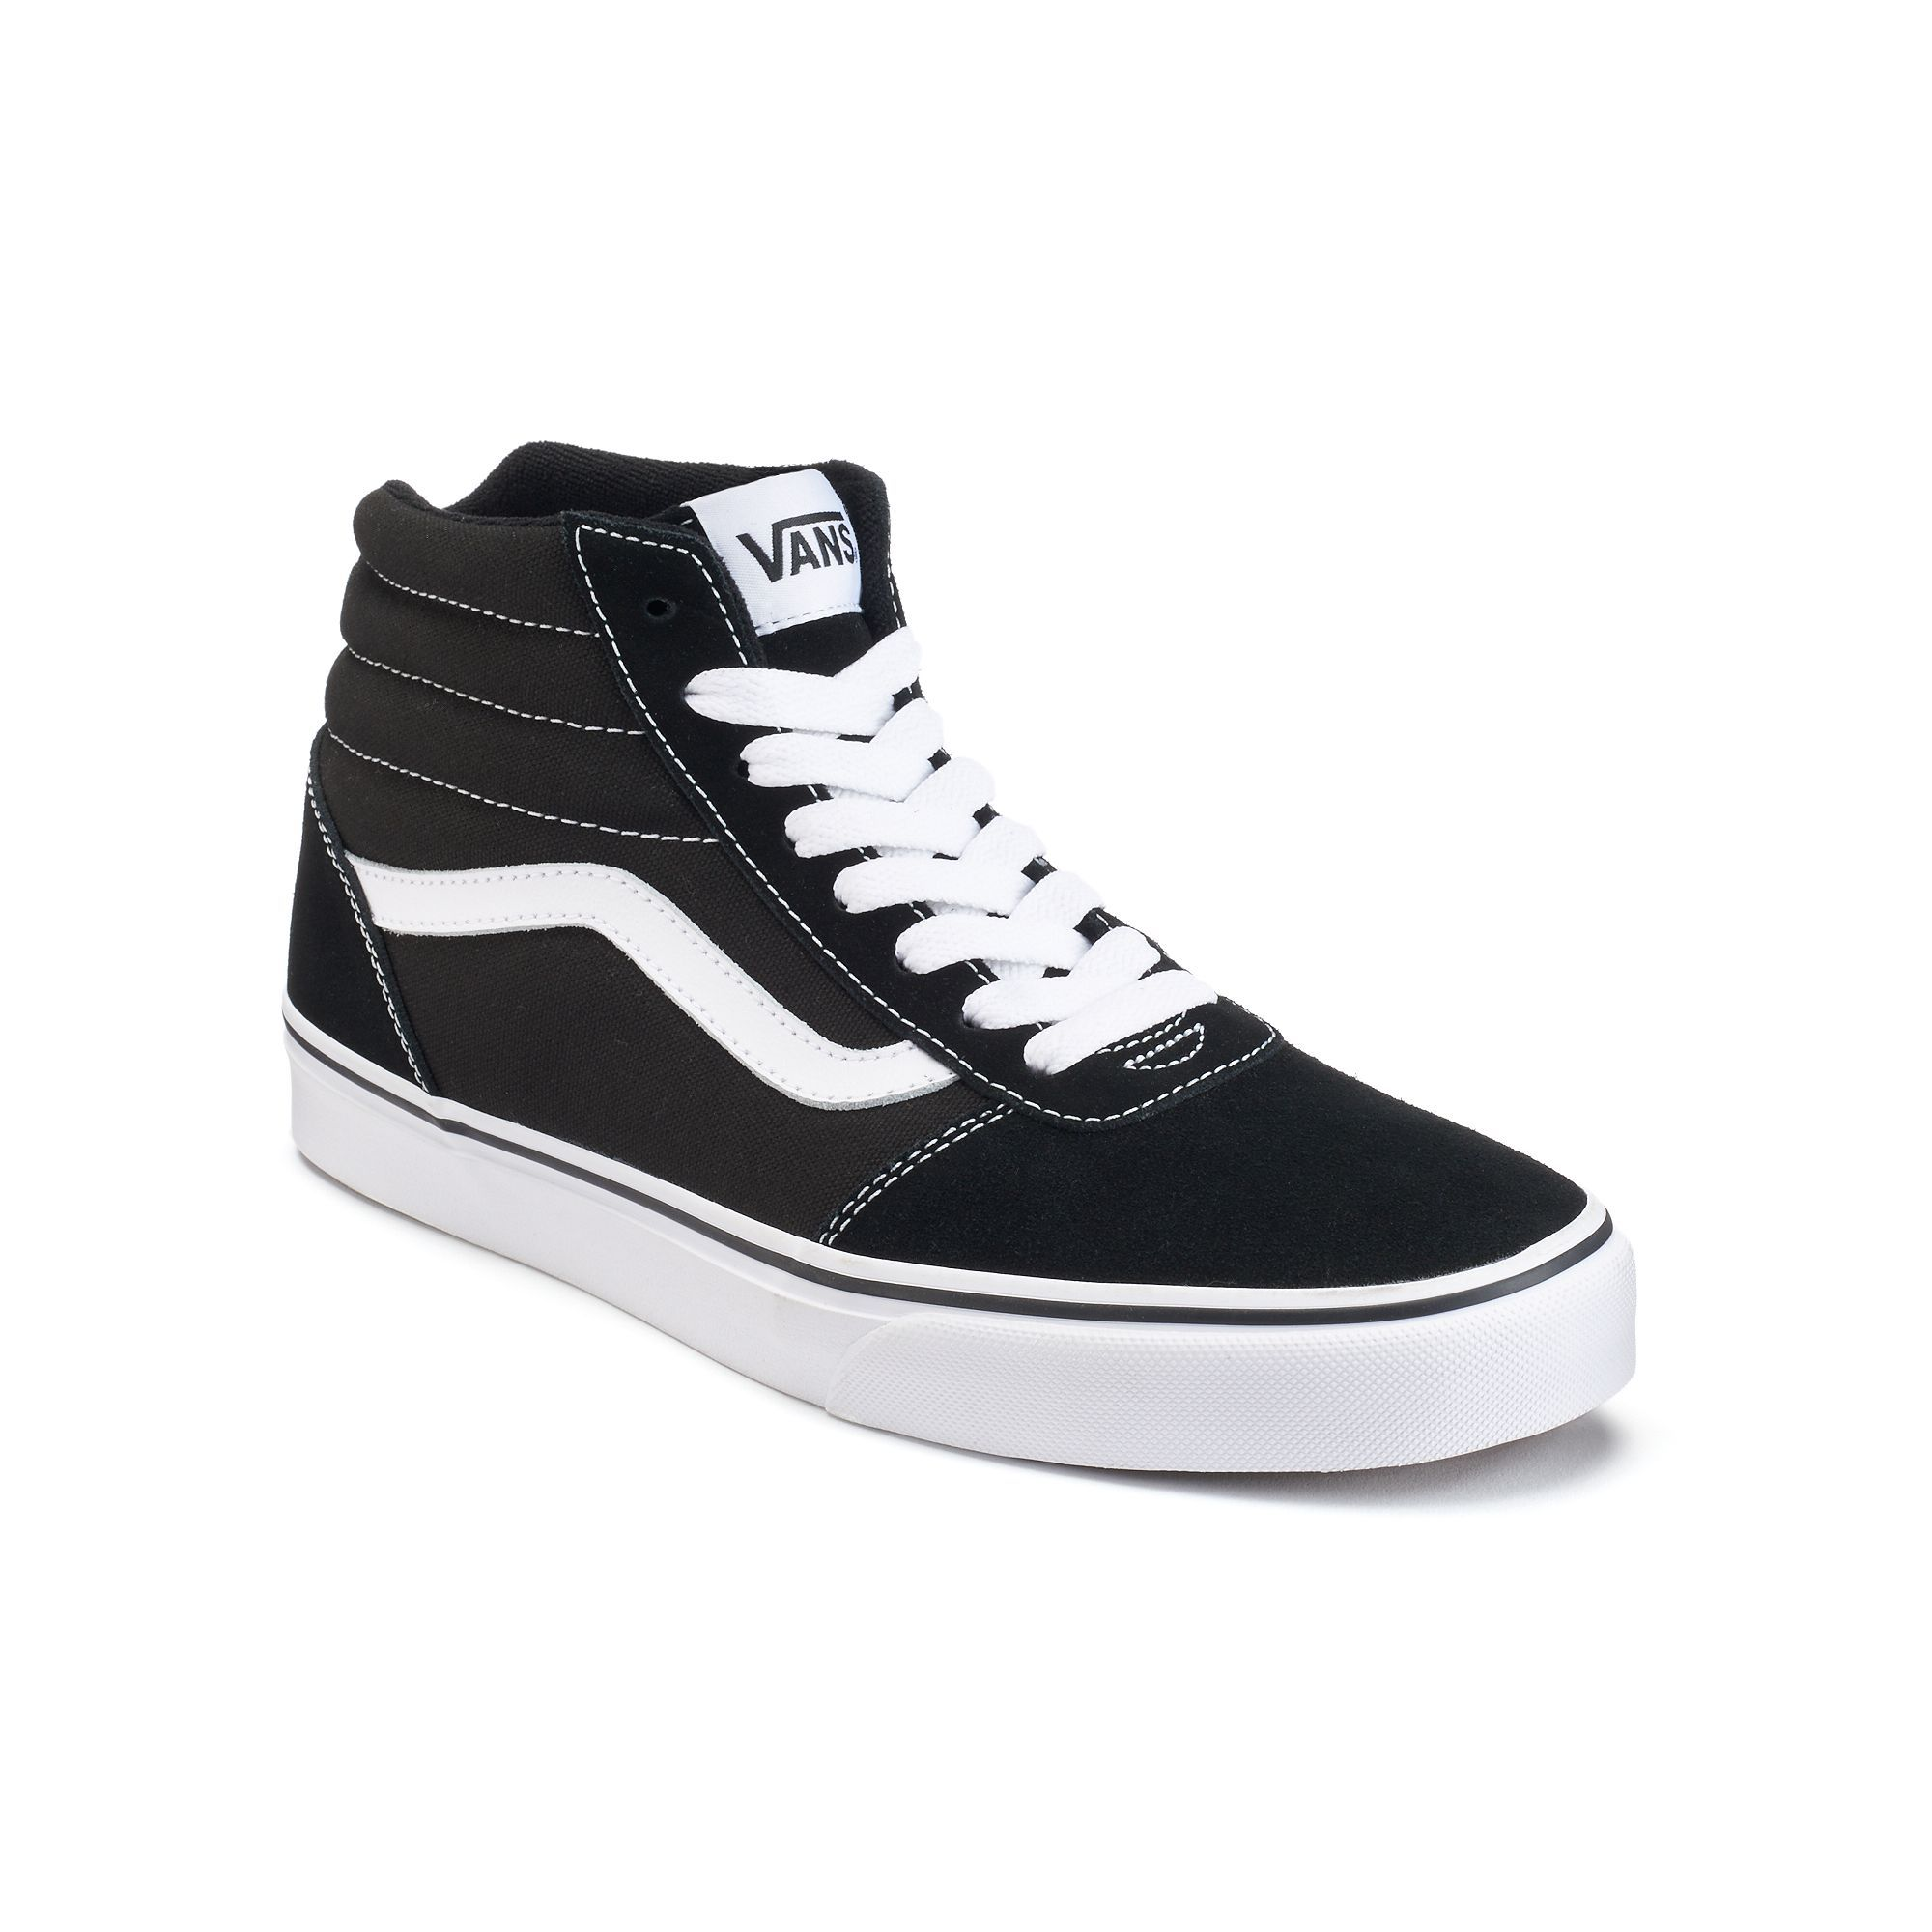 87409ee686 Vans Ward Hi Men s Suede Skate Shoes